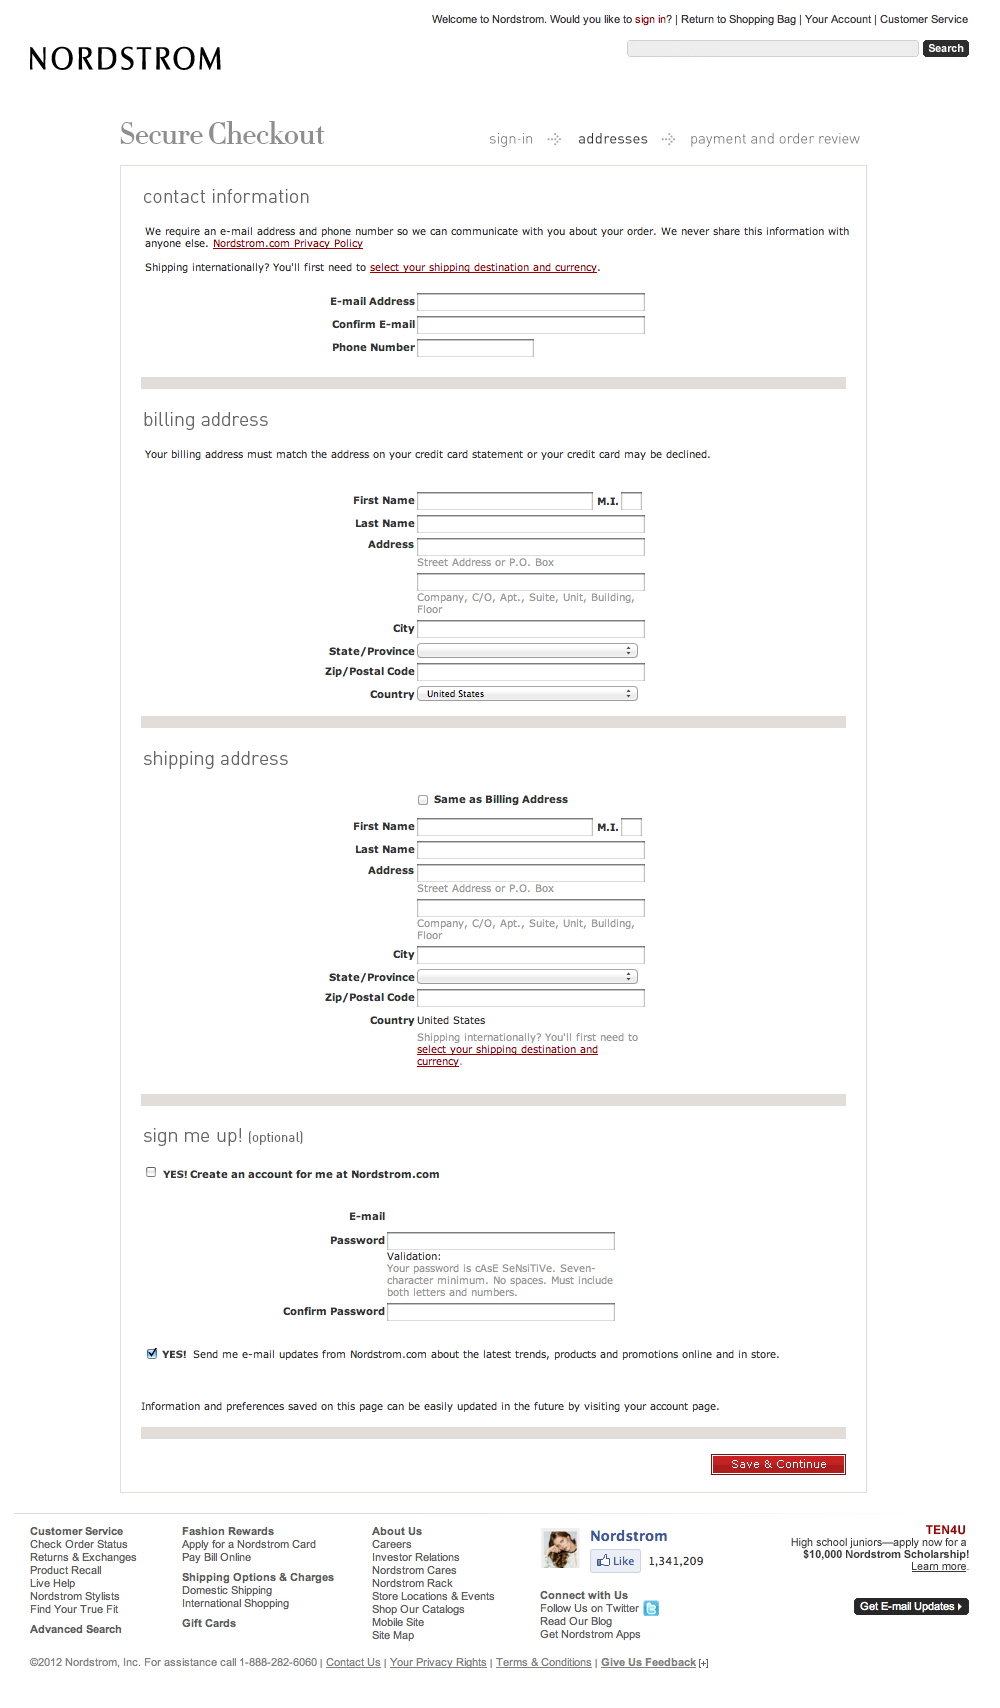 Nordstrom's Shipping address and Billing address Checkout Step